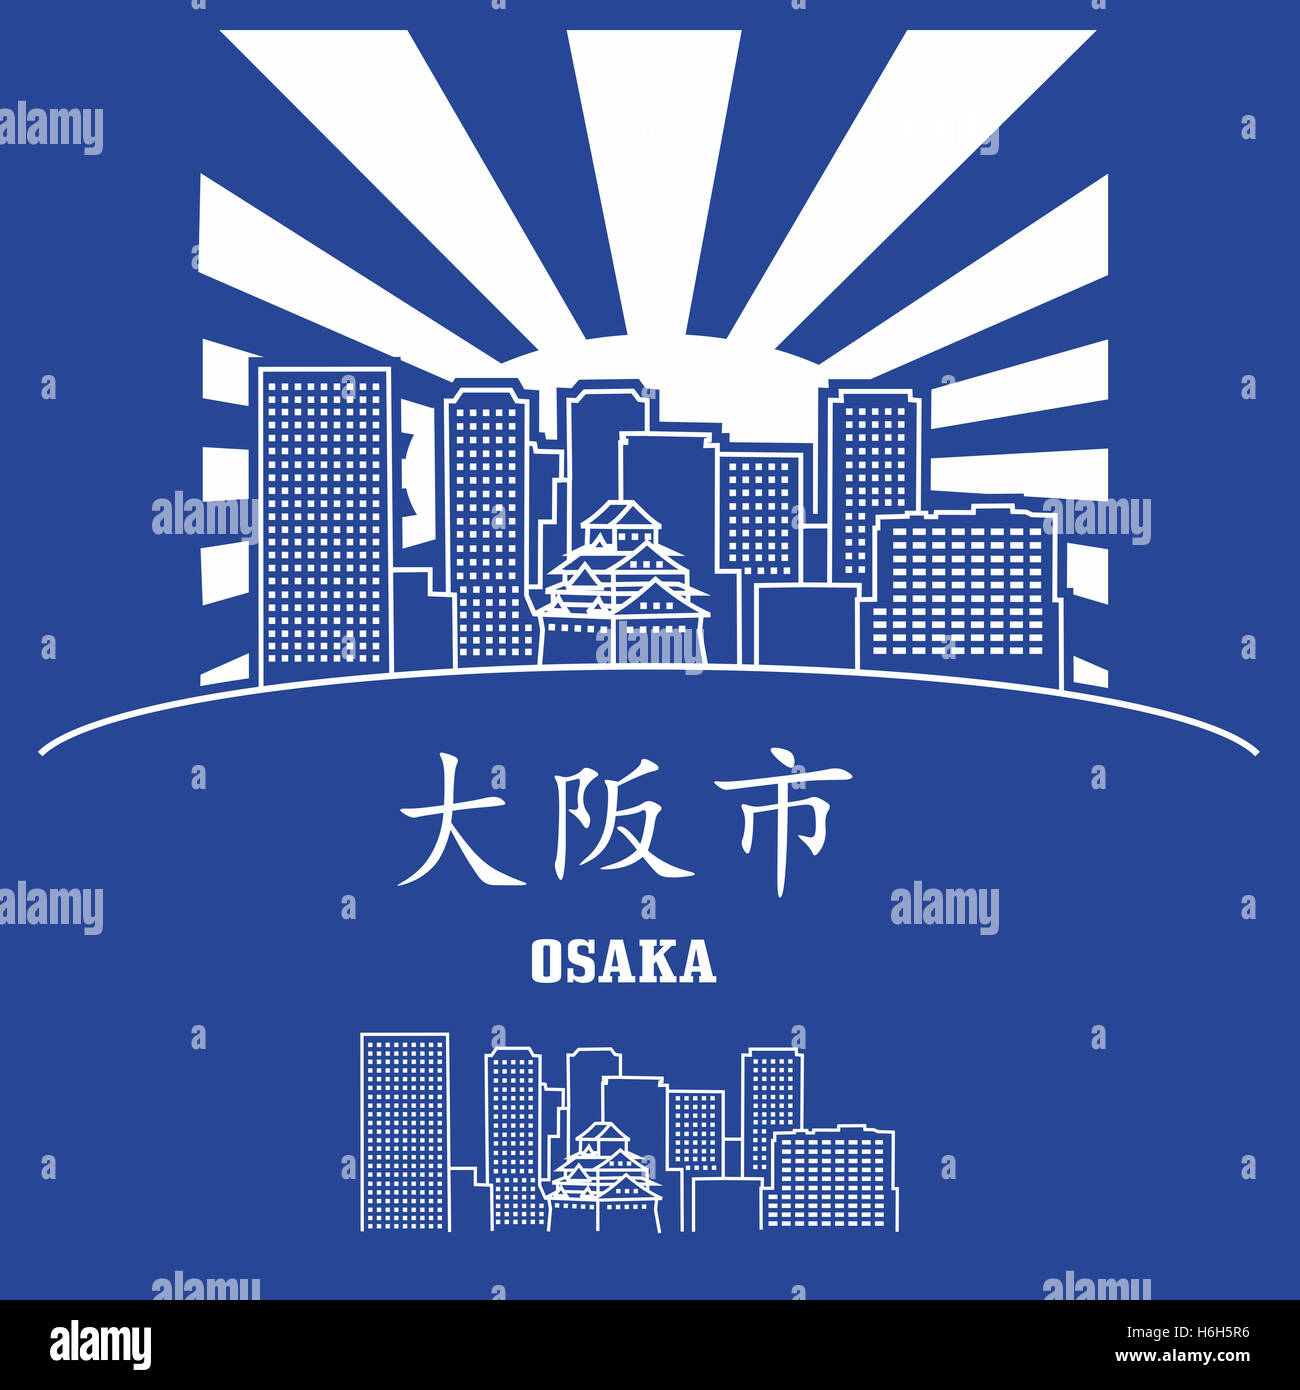 Outline athens skyline with blue buildings and copy space stock vector - City Skyline Of Osaka Japan With Japanese Hieroglyph Osaka Name And The Silhouette Of